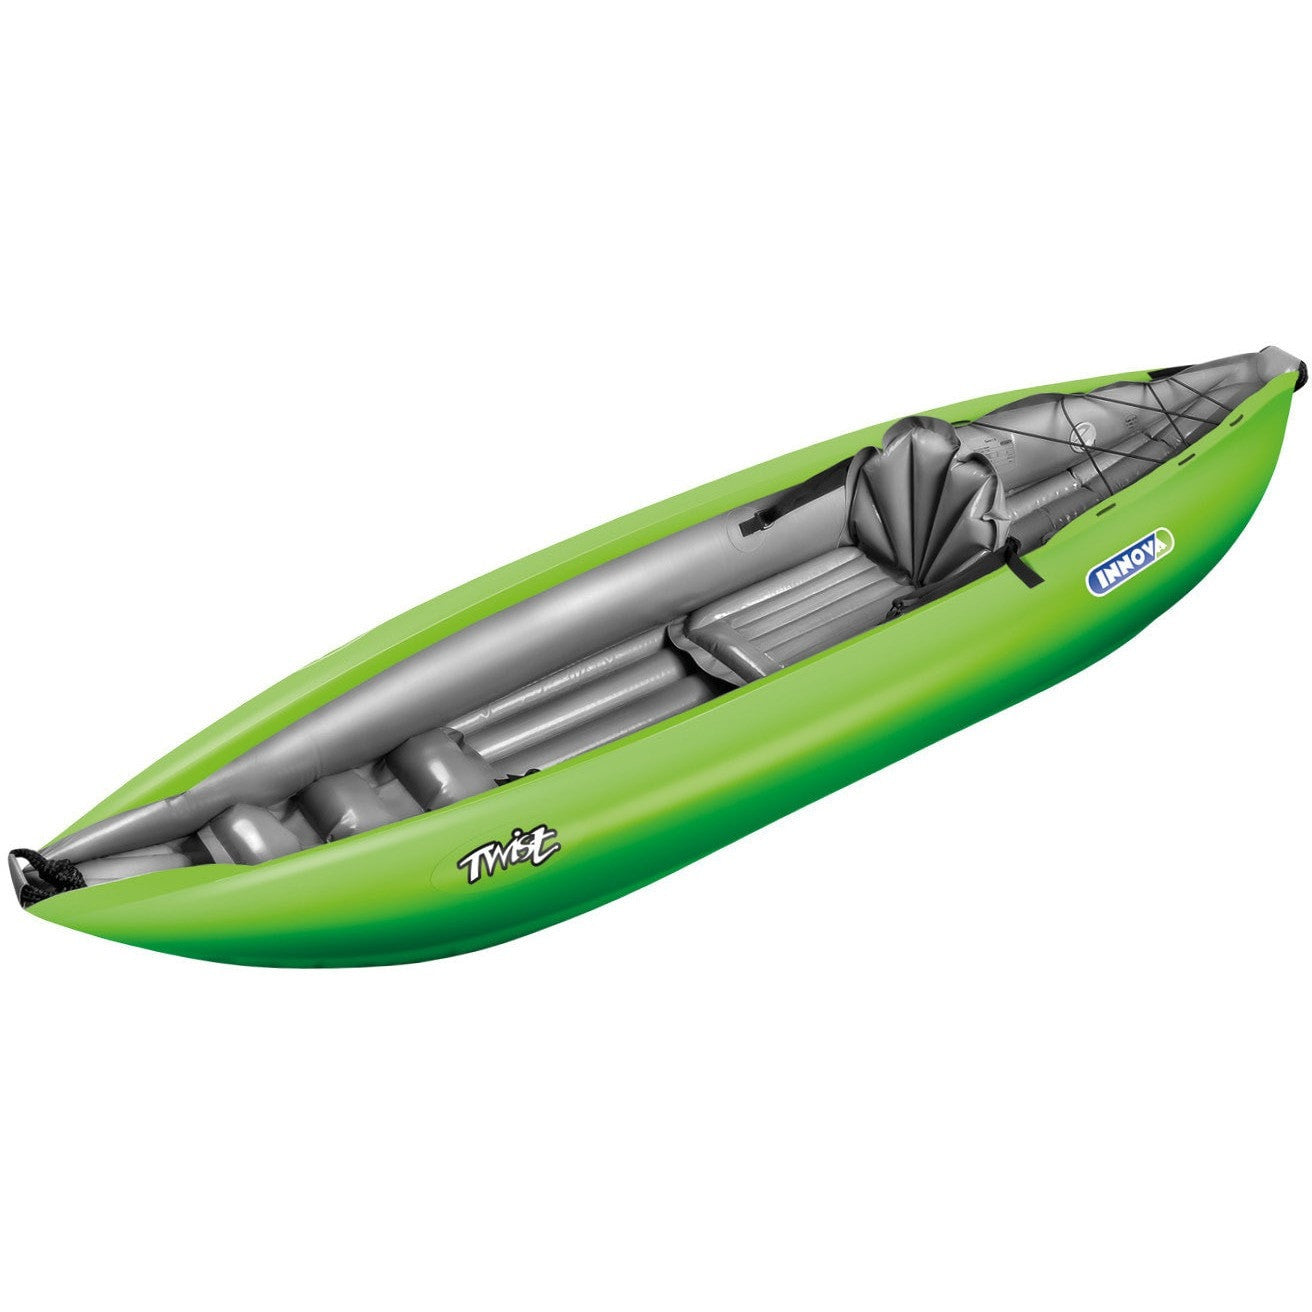 Innova Twist 1 Inflatable Sit-On Kayak | Green - Kayak Creek